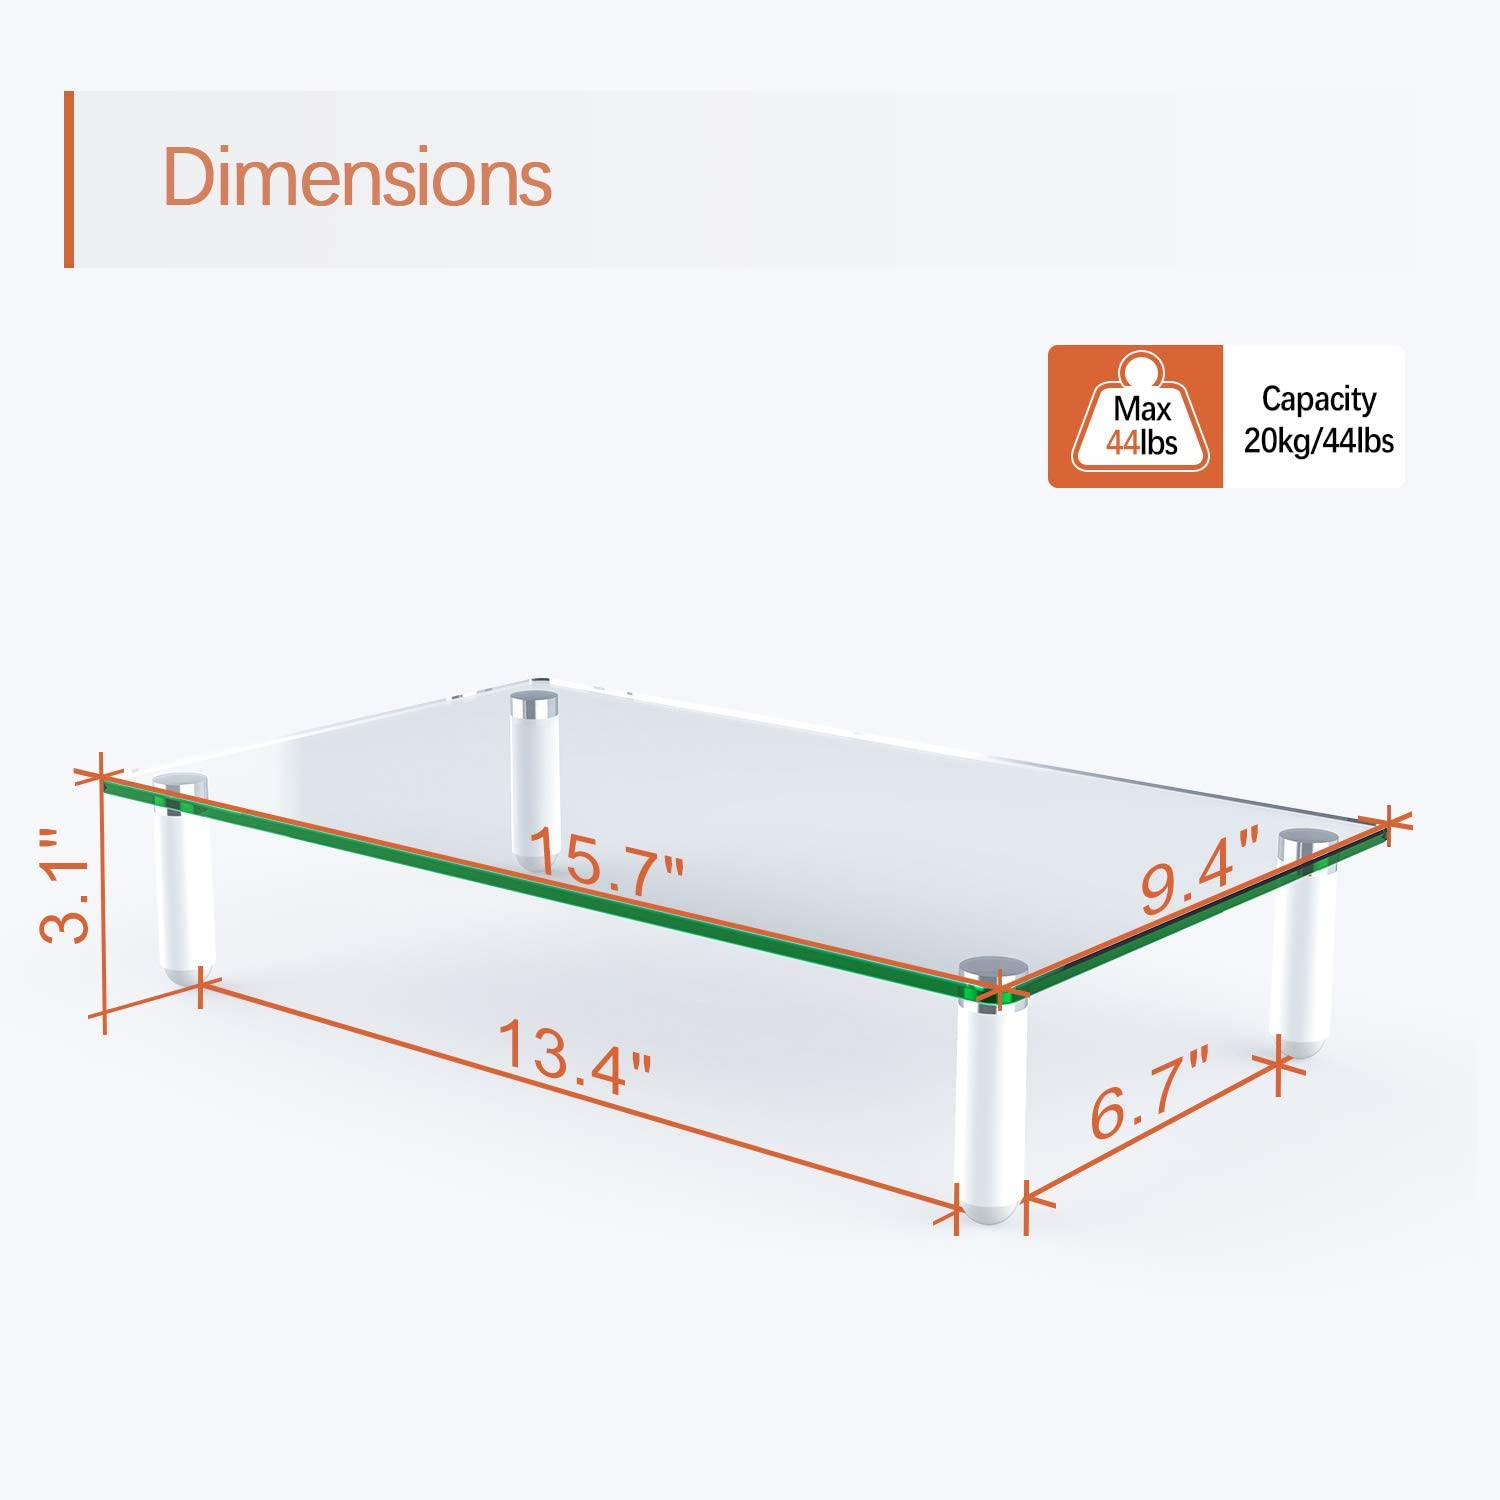 Clear Tempered Glass Computer Monitor Stand Riser for Laptop, Computer, iMac, and All Flat Screen Display, PUTORSEN Desktop Stand with Anti-Slip Pads Holds 44lbs, Storage Shelf & Screen Holder